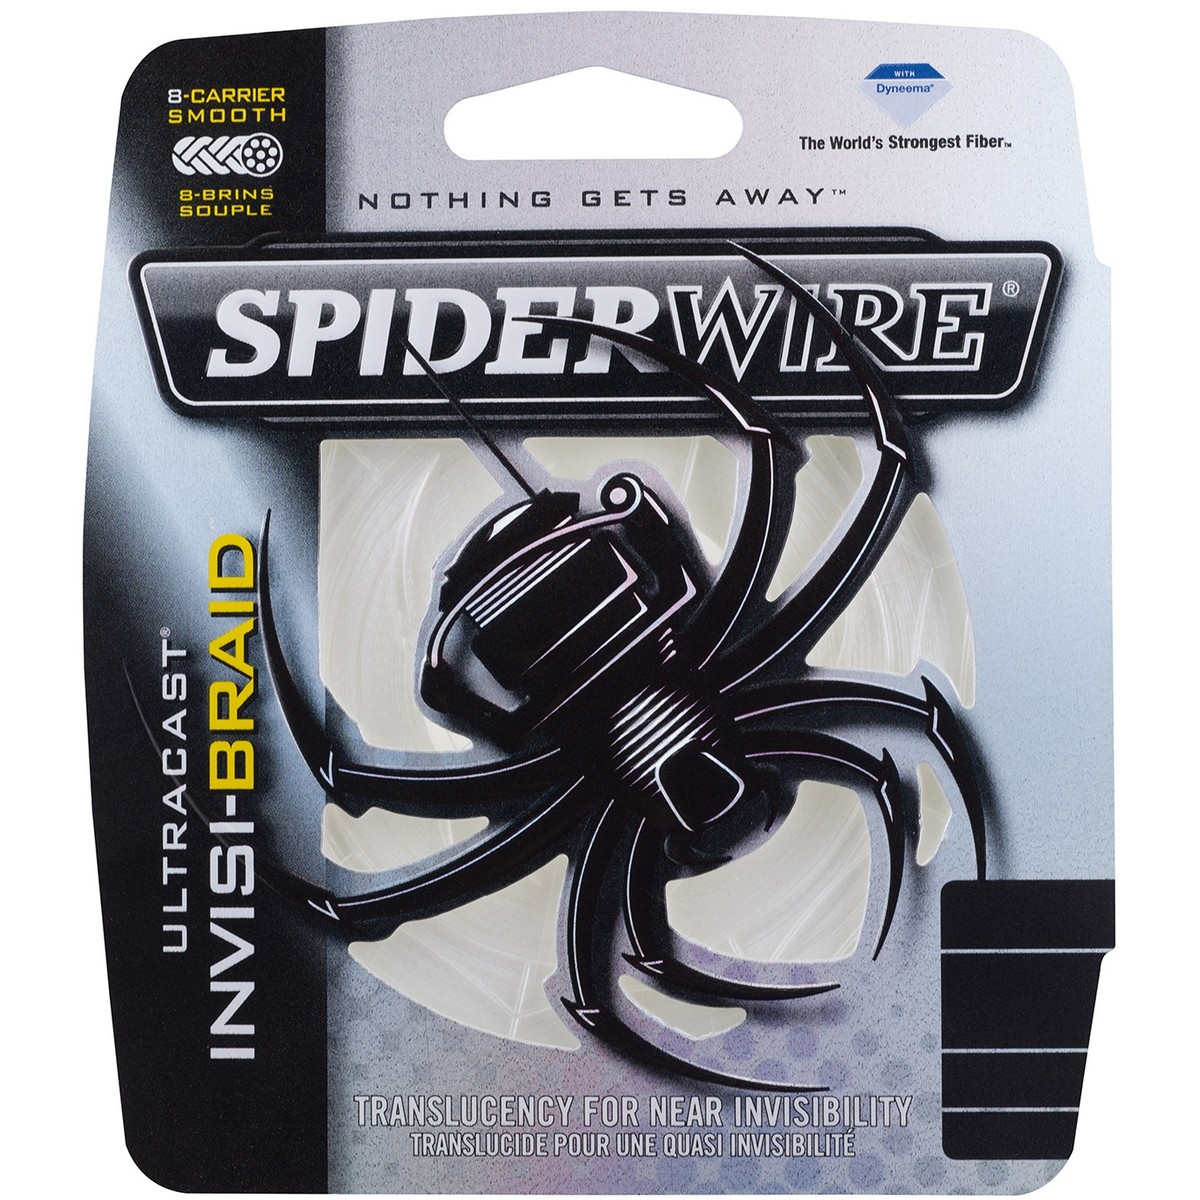 SpiderWire Ultracast Invisi-Braid 8-carrier 110m-0